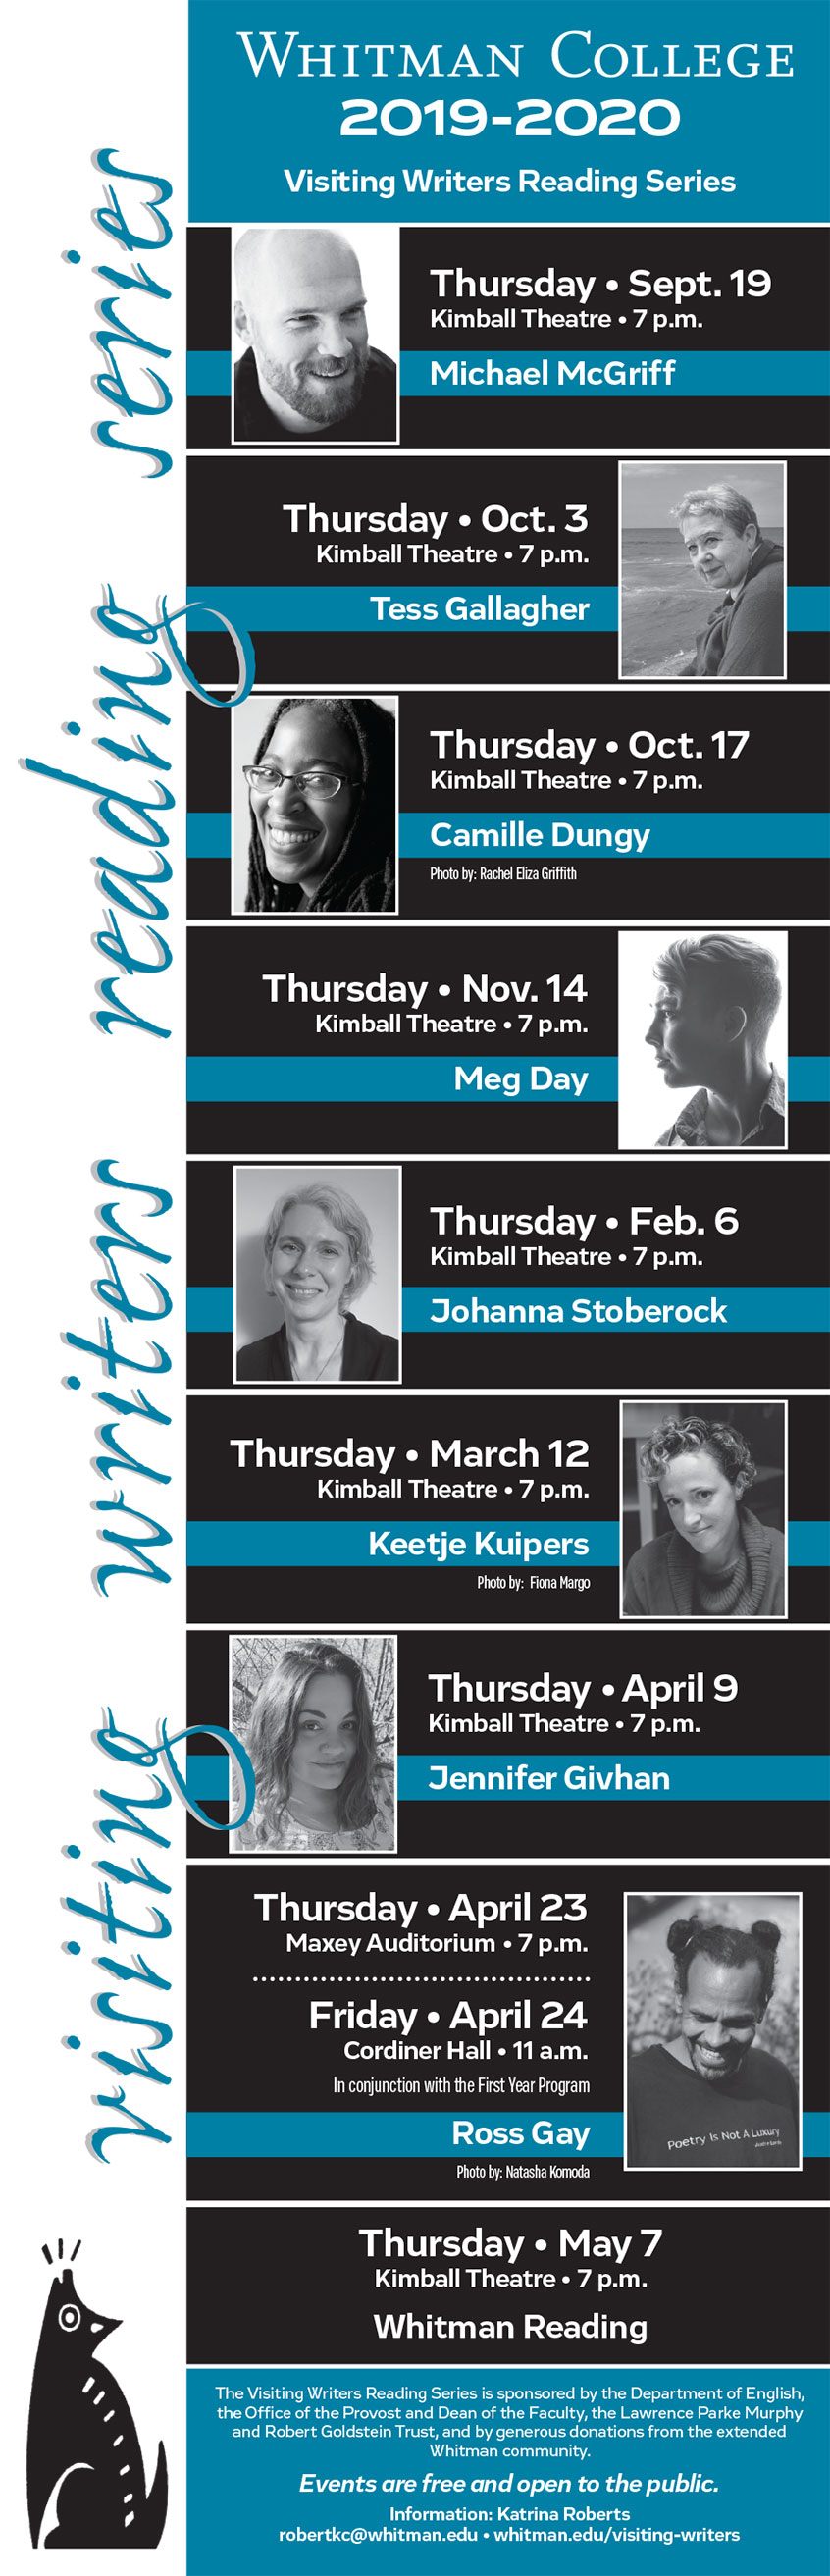 Visiting Writers Reading Series poster 2019-20